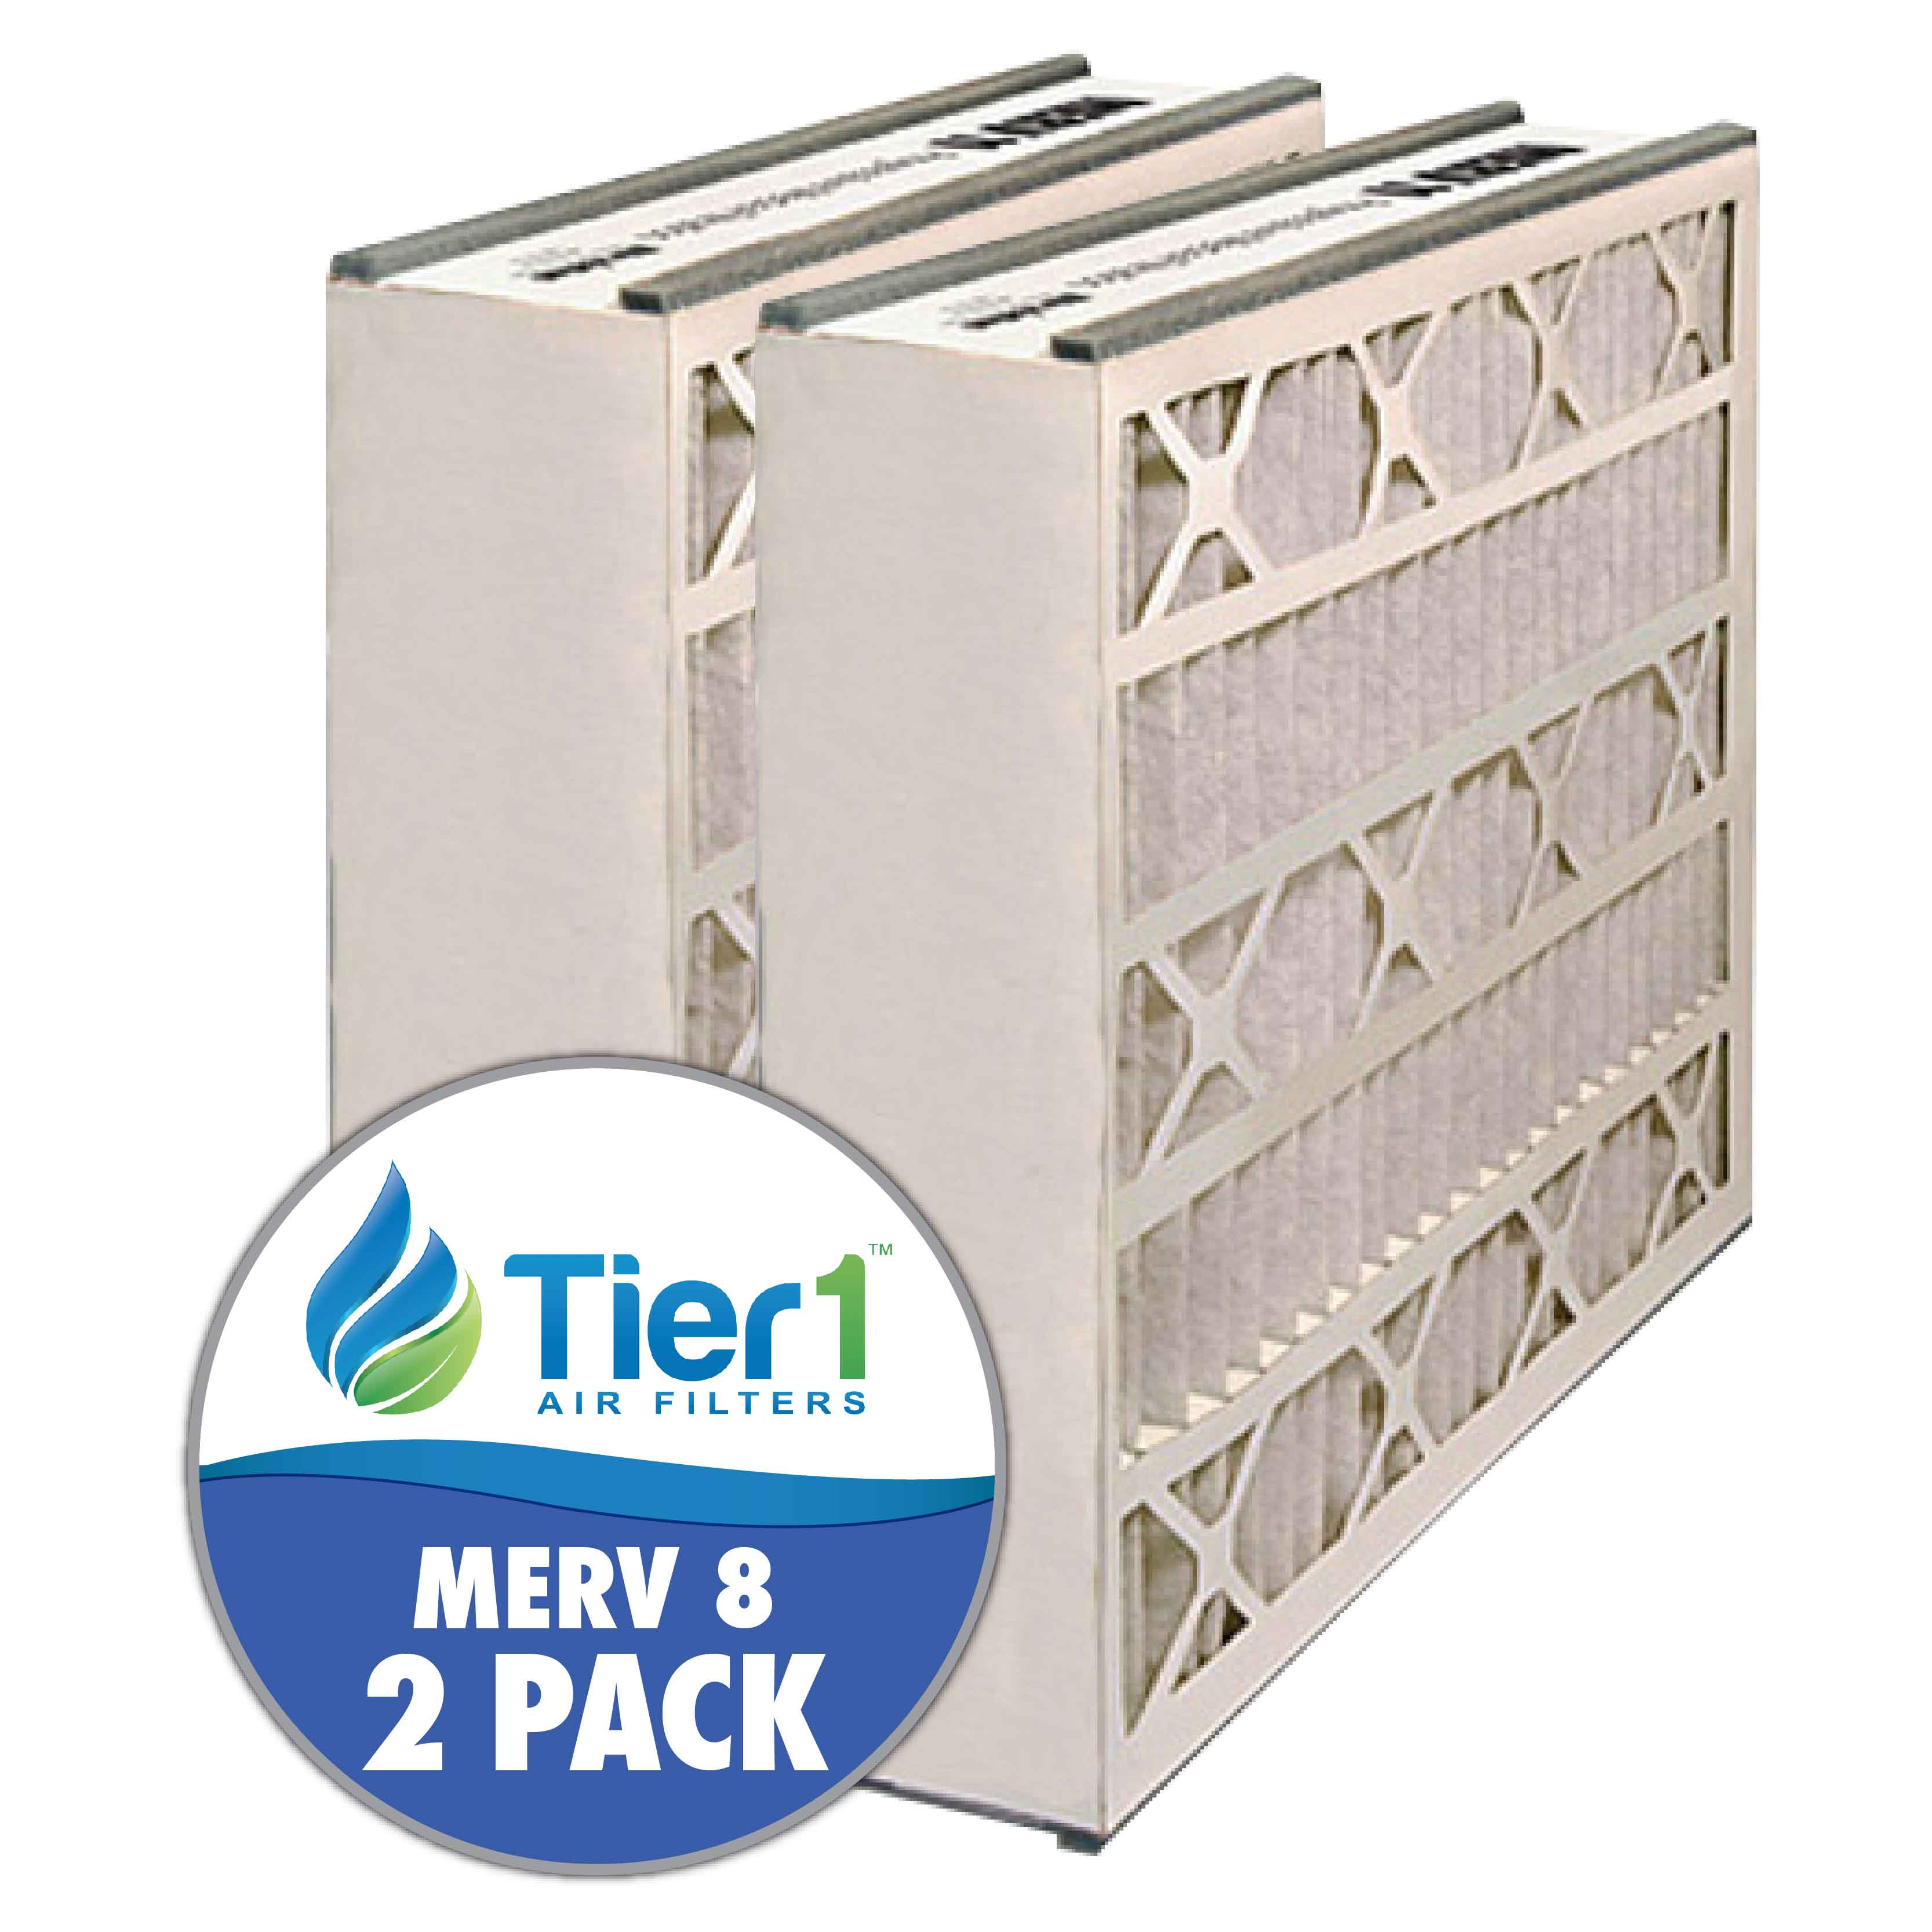 20x20x5 255649-103 & 259112-103 Trion / Air Bear MERV 8 Comparable Air Filter by Tier1 (2-pack) TIER1-RDPAB052020M08